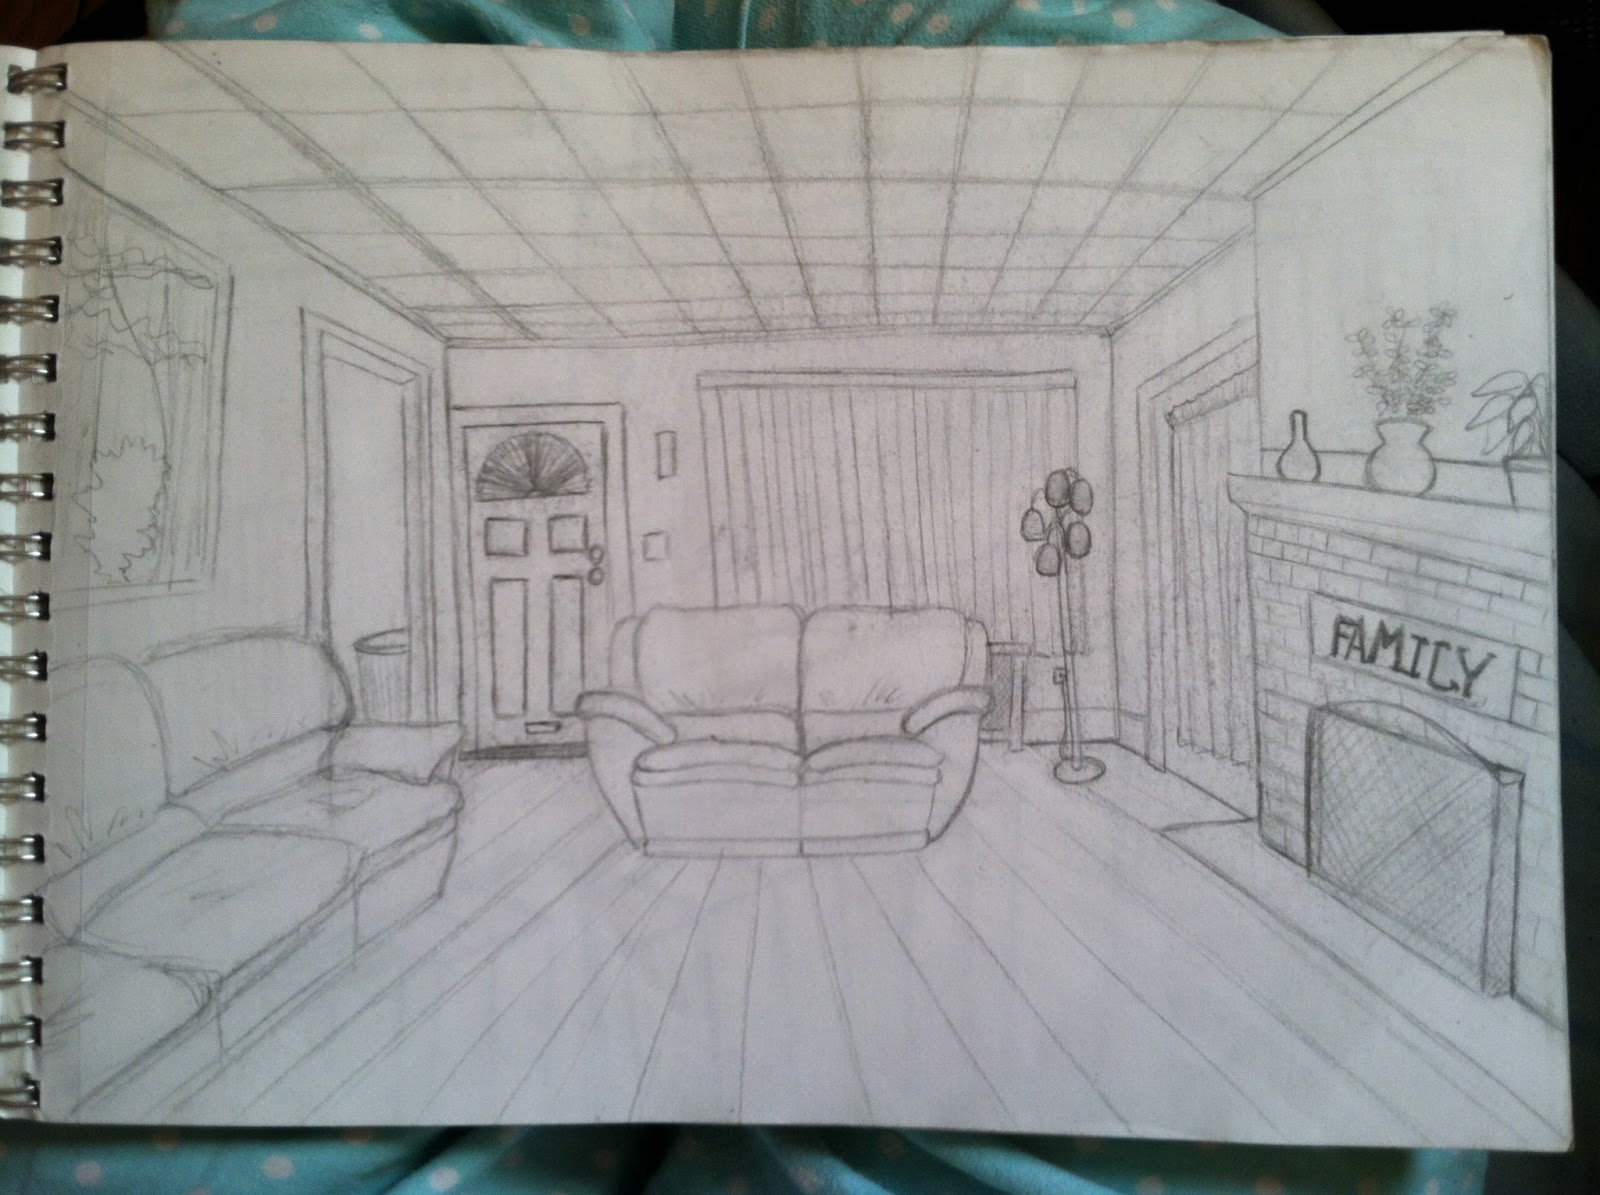 Gossipi 39 s animation one point perspective sketches for Living room 2 point perspective